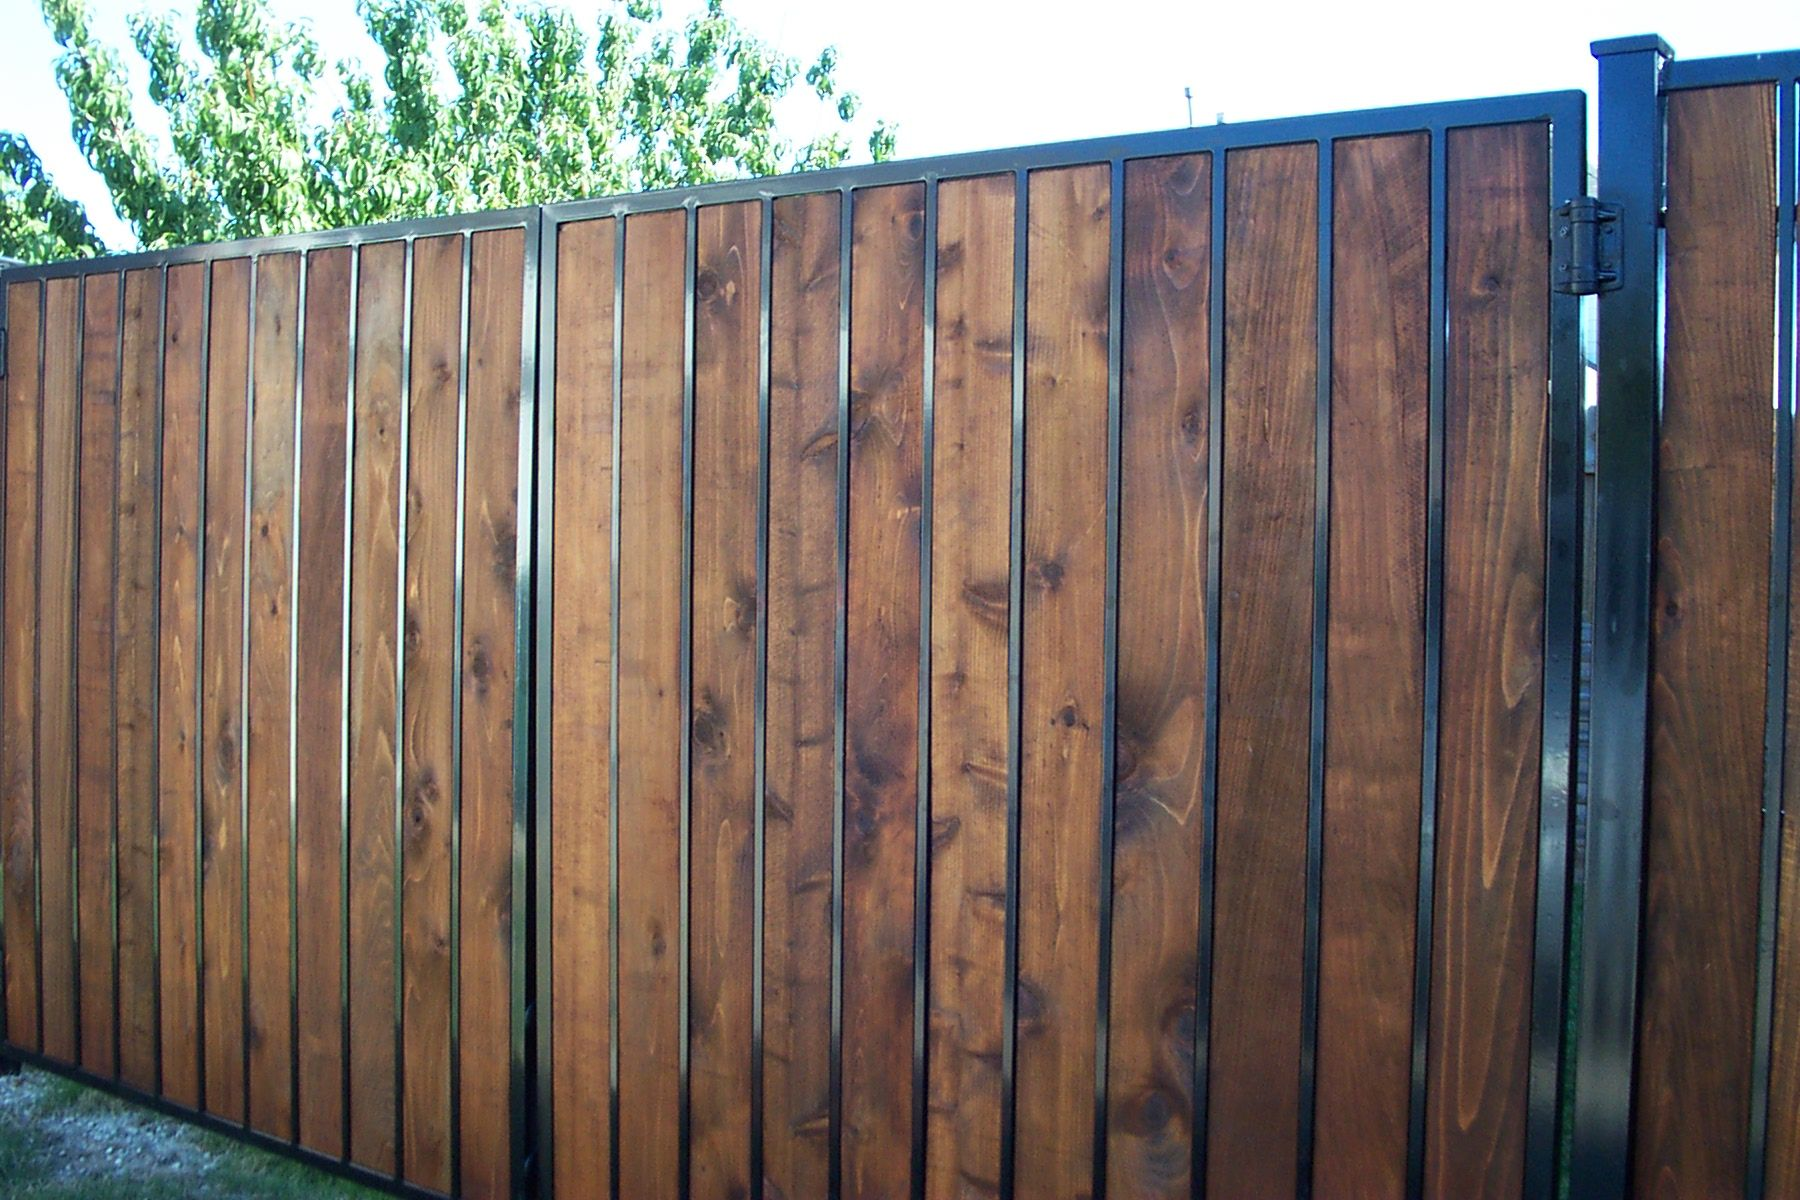 Galvanized steel frame drive gate fence dallas wood gate - Free Fence And Gate Projects Buildeazy Free Woodworking Plans